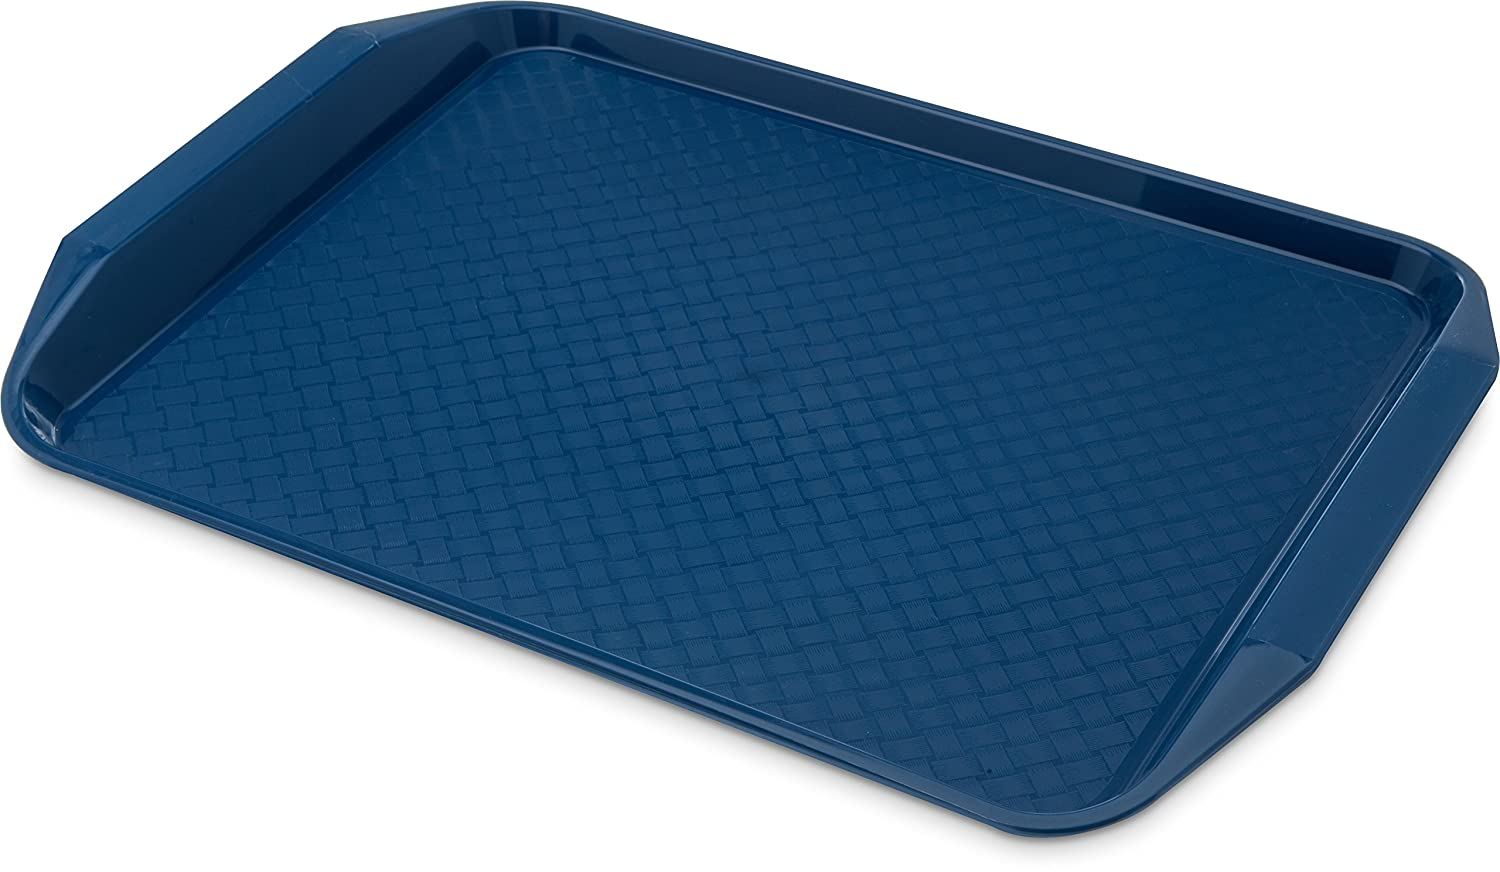 Carlisle CT121714 Cafe Handled Plastic Cafeteria/Fast Food Tray, NSF Certified, BPA Free, 17